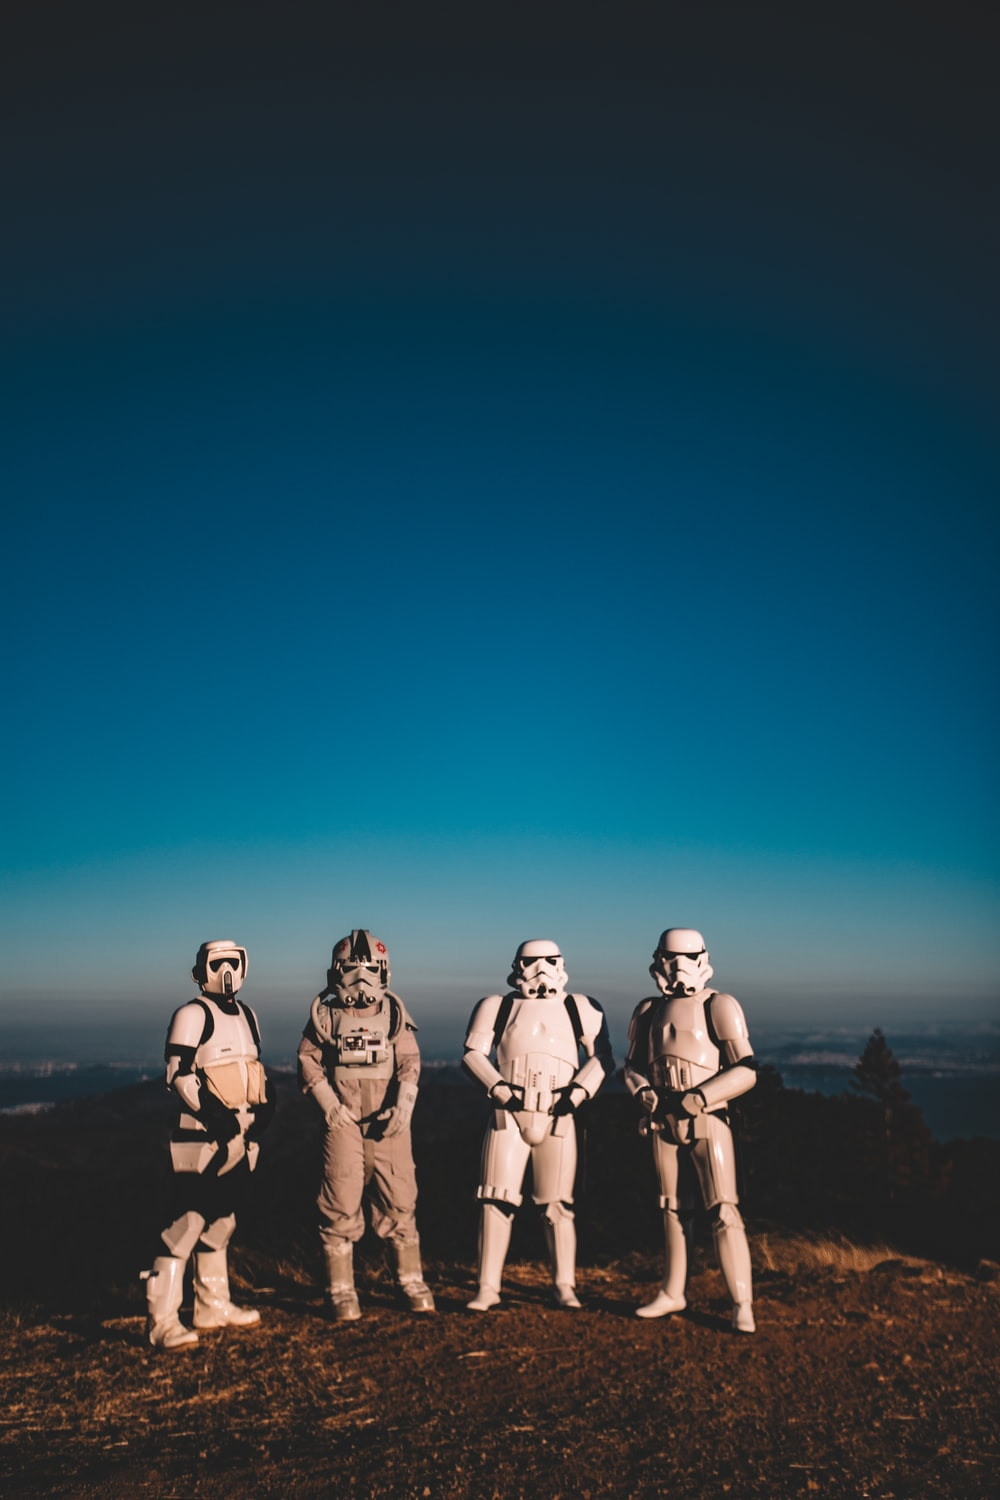 four person wearing Star Wars Clone Trooper costumes